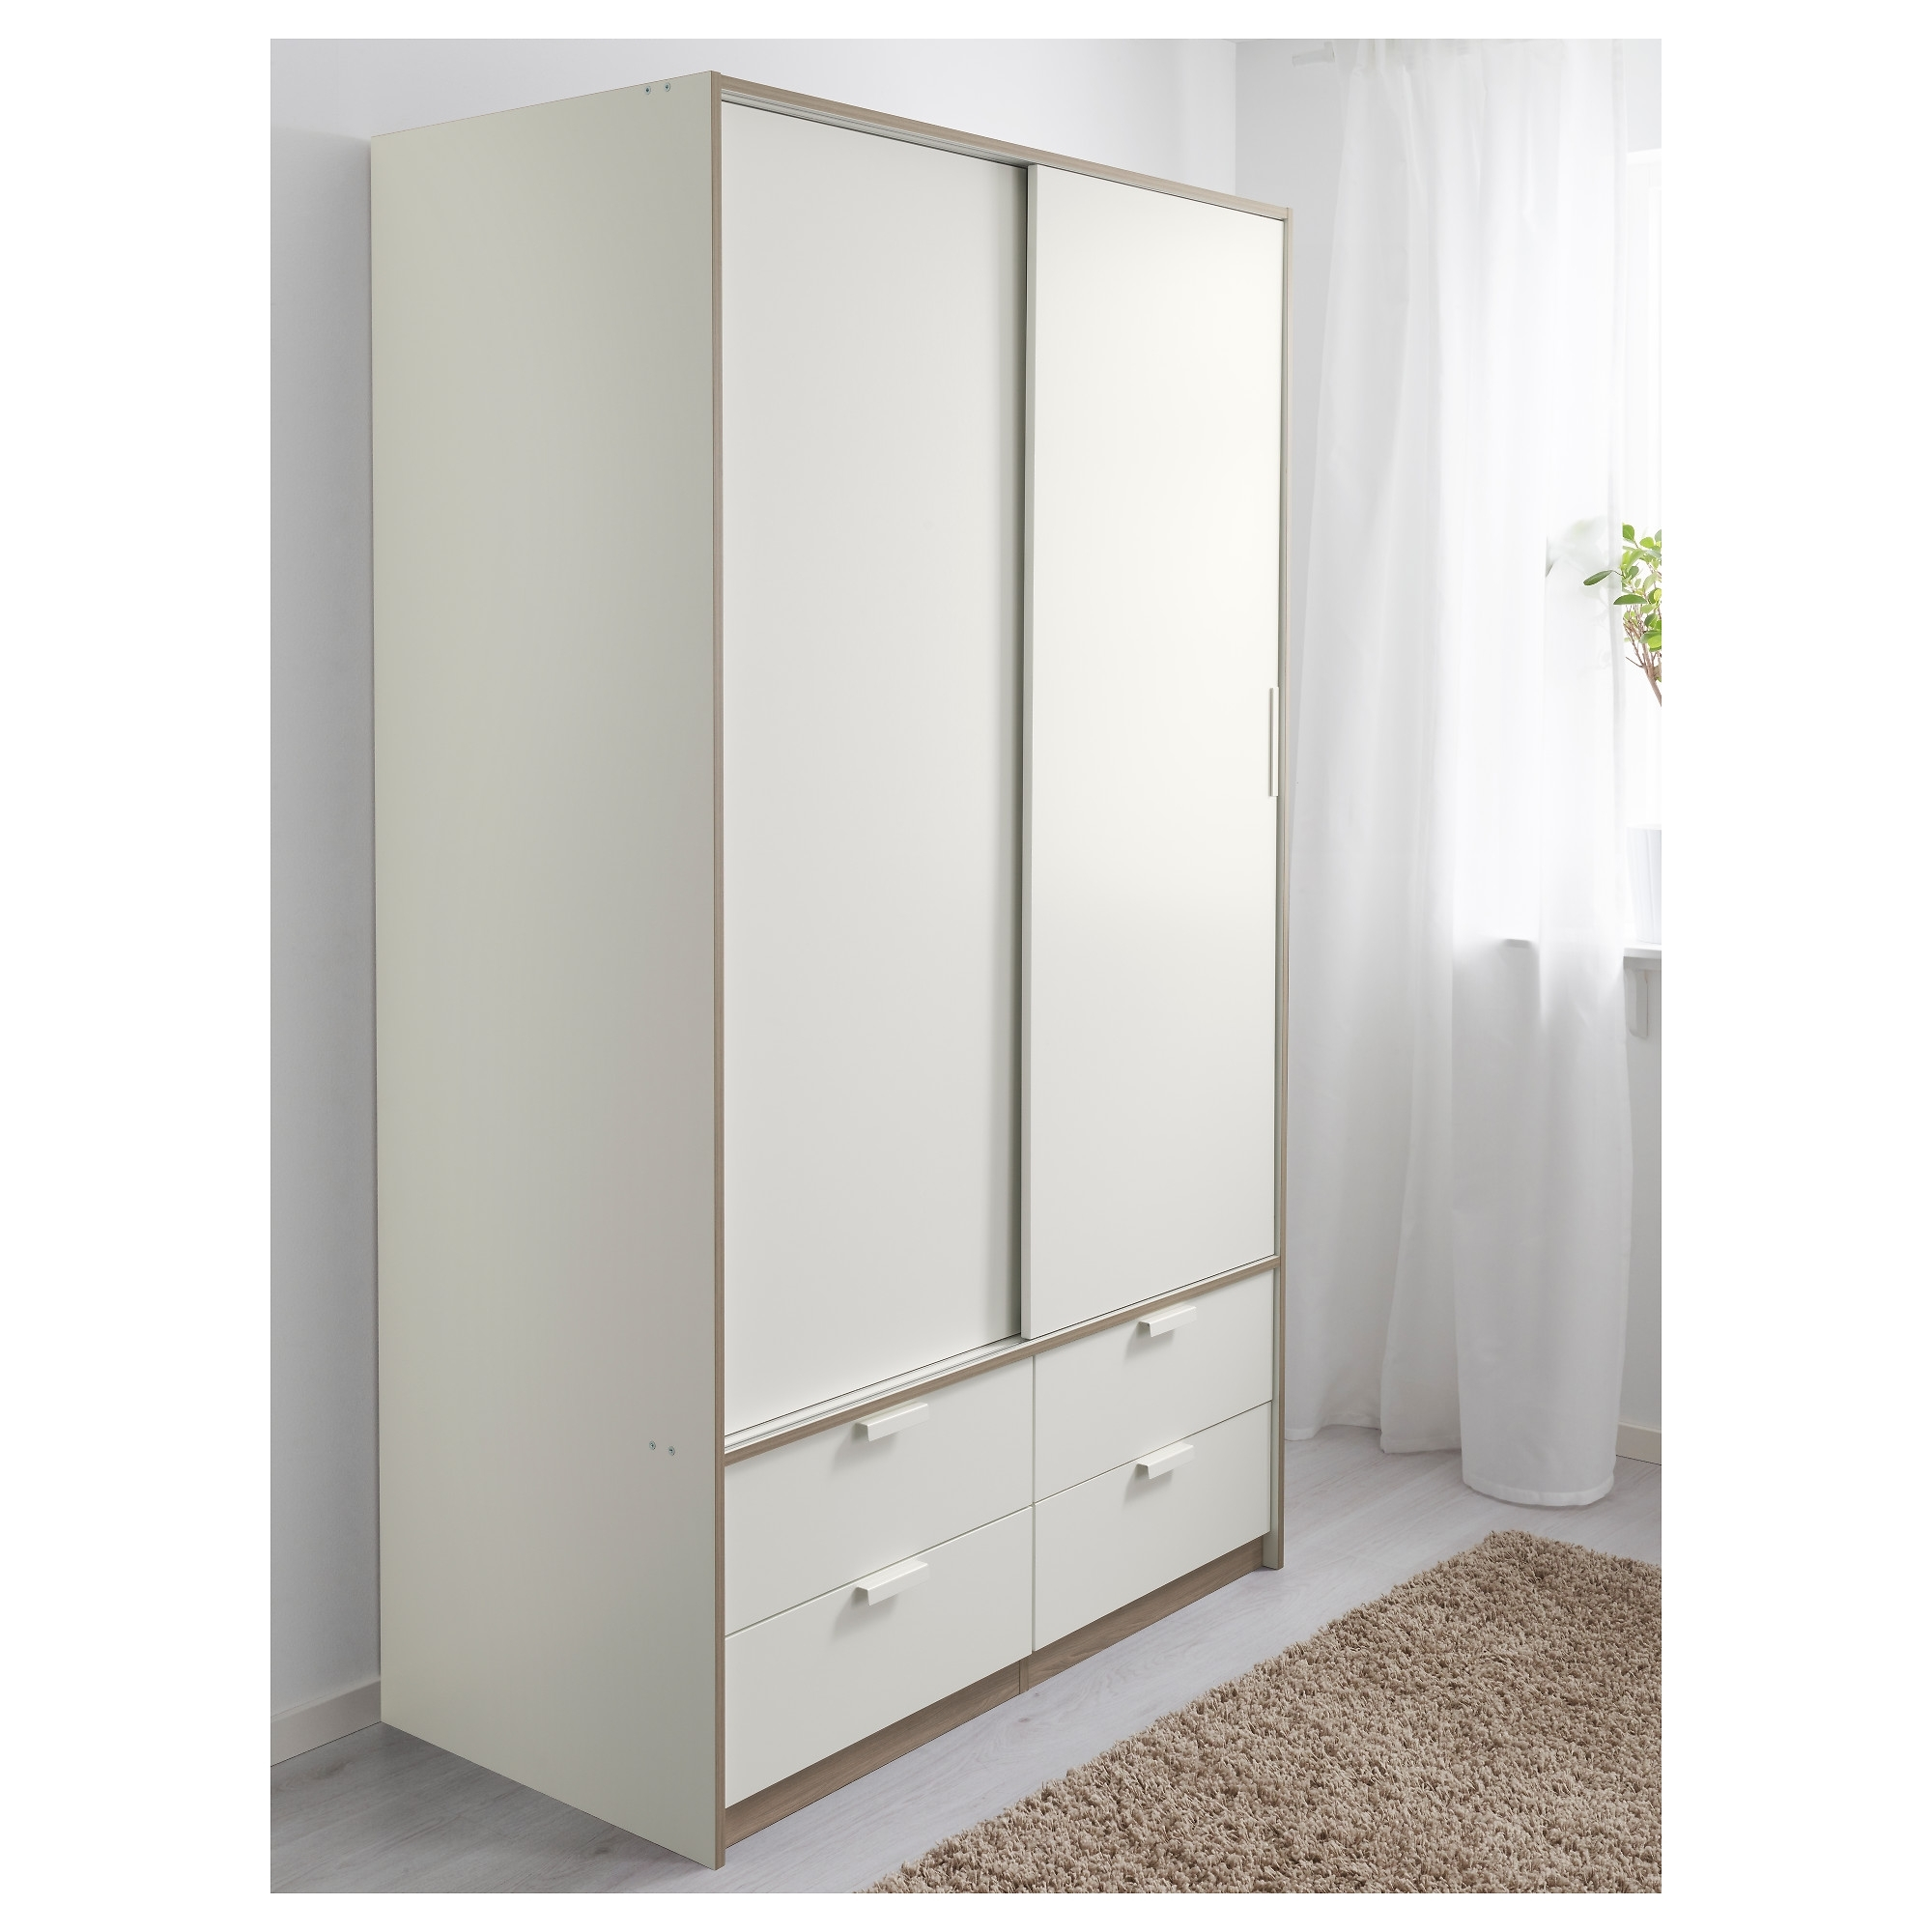 Trendy Trysil Wardrobe W Sliding Doors/4 Drawers – Ikea Throughout Sliding Door Wardrobes (View 15 of 15)